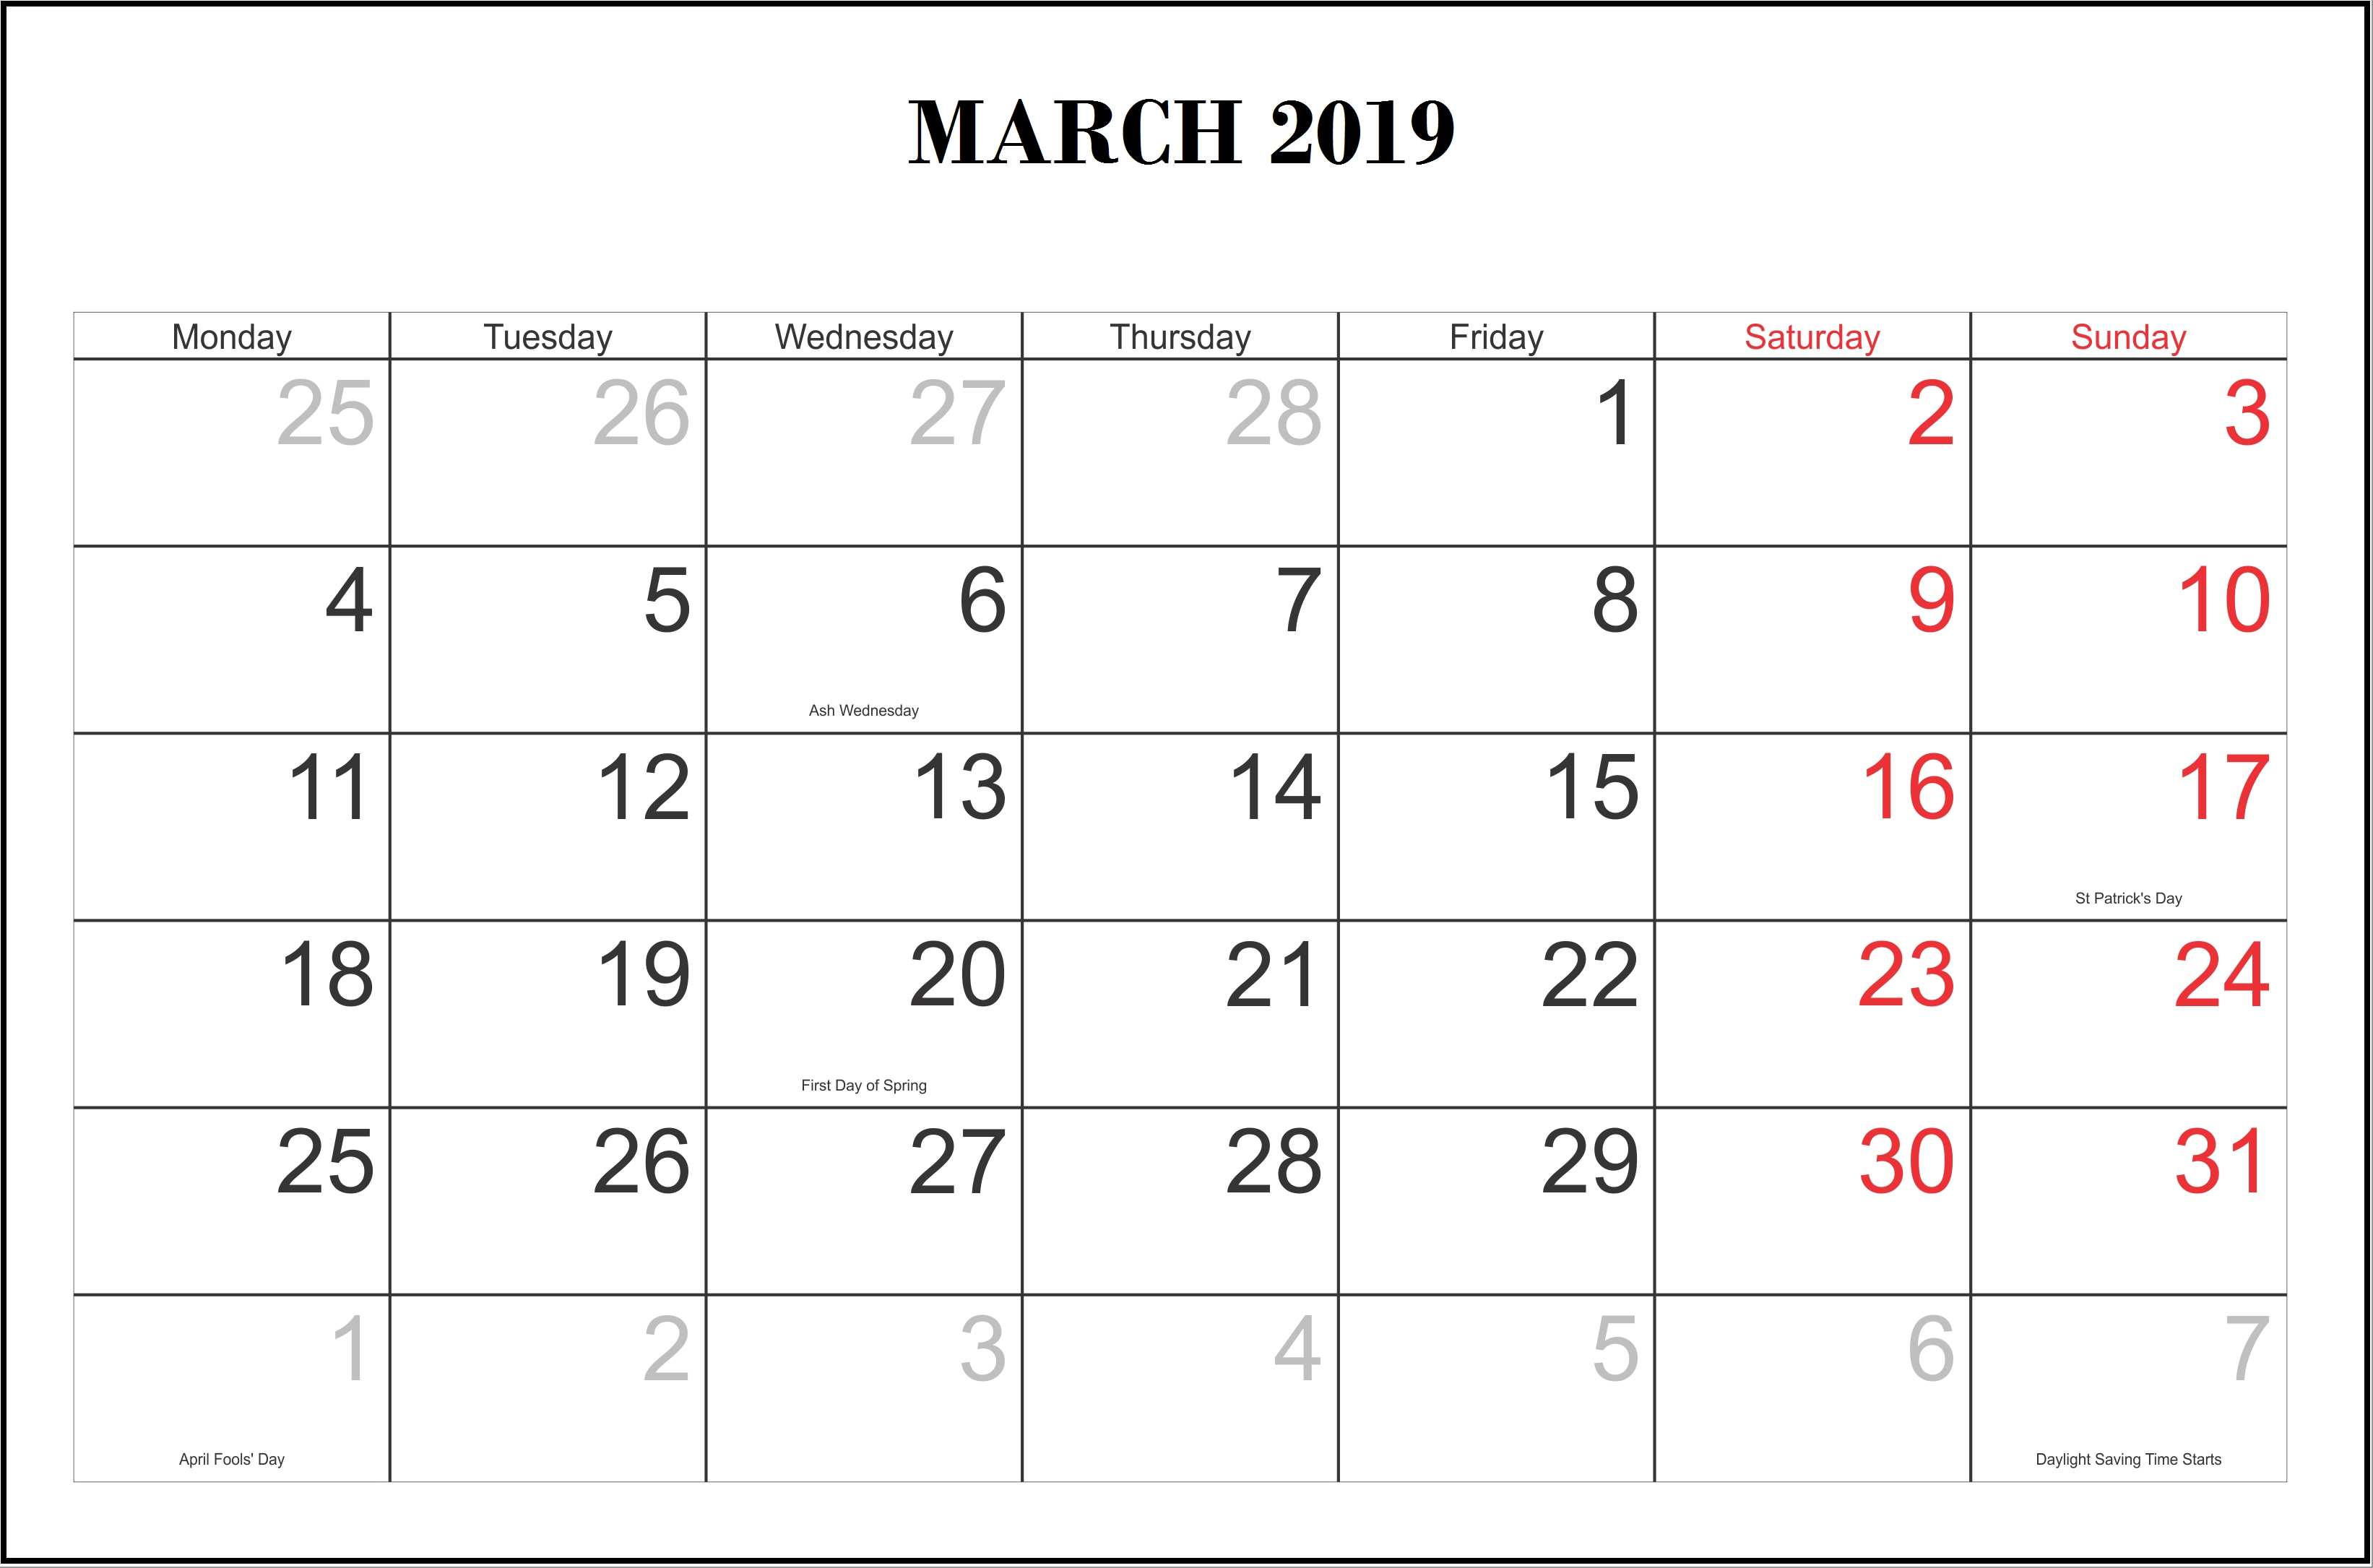 Monthly 2019 Calendar Templates March | Monthly Calendar Templates Calendar 2019 Schedule